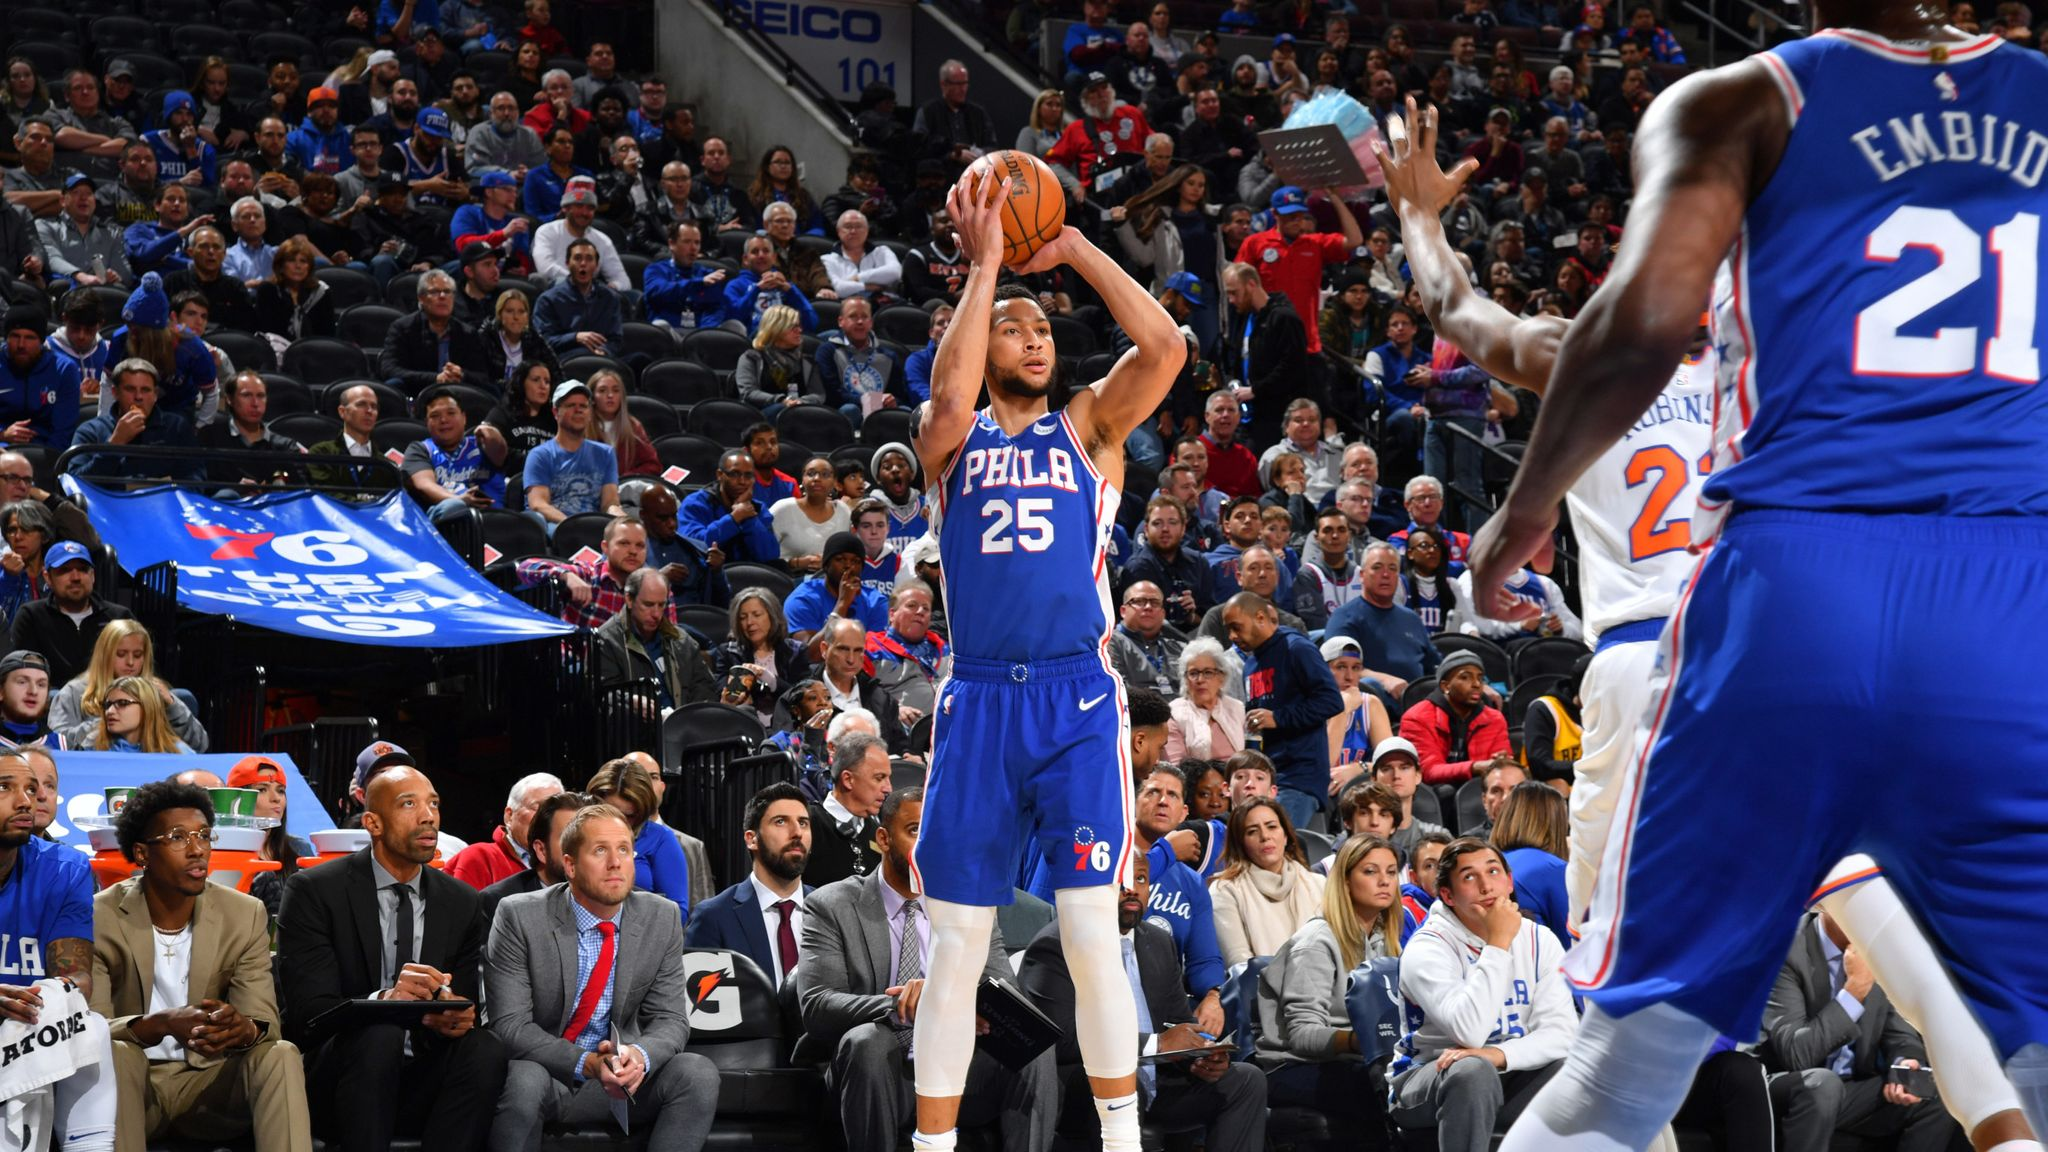 Ben Simmons hits first NBA three-pointer as Sixers beat Knicks